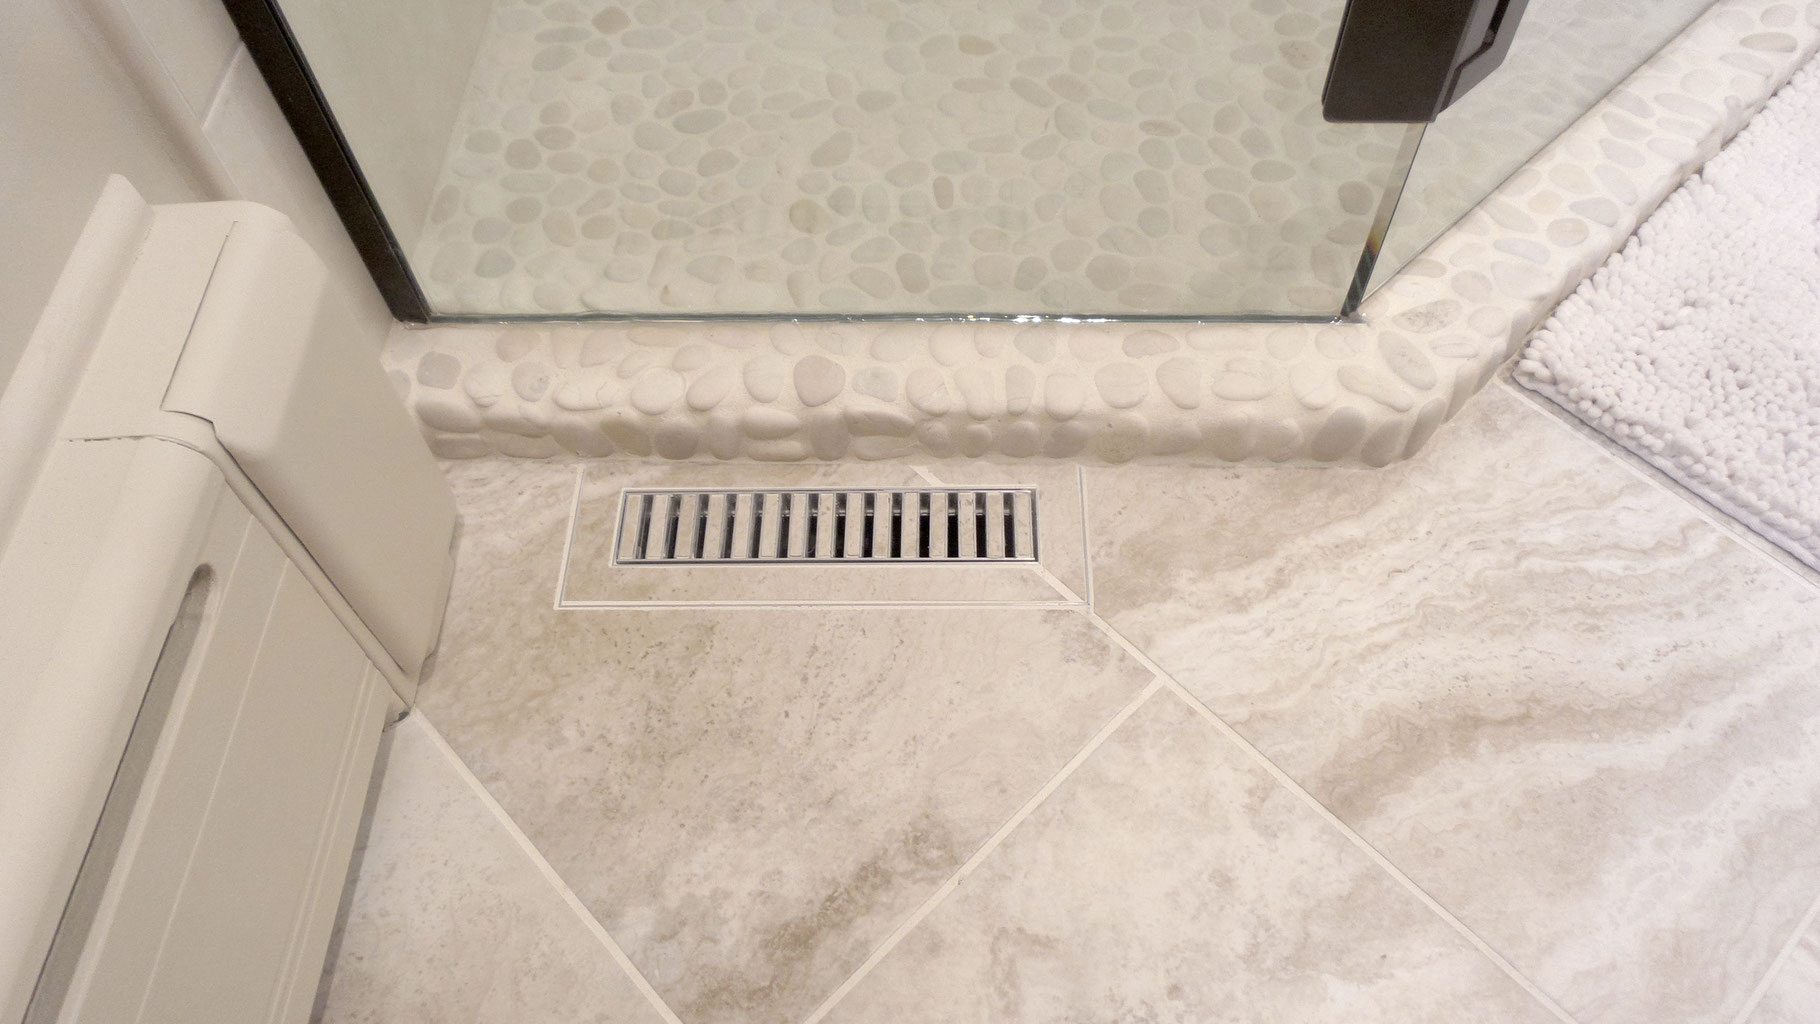 Bathroom Floor With A Tiled Heat Register In White Tile Jpg